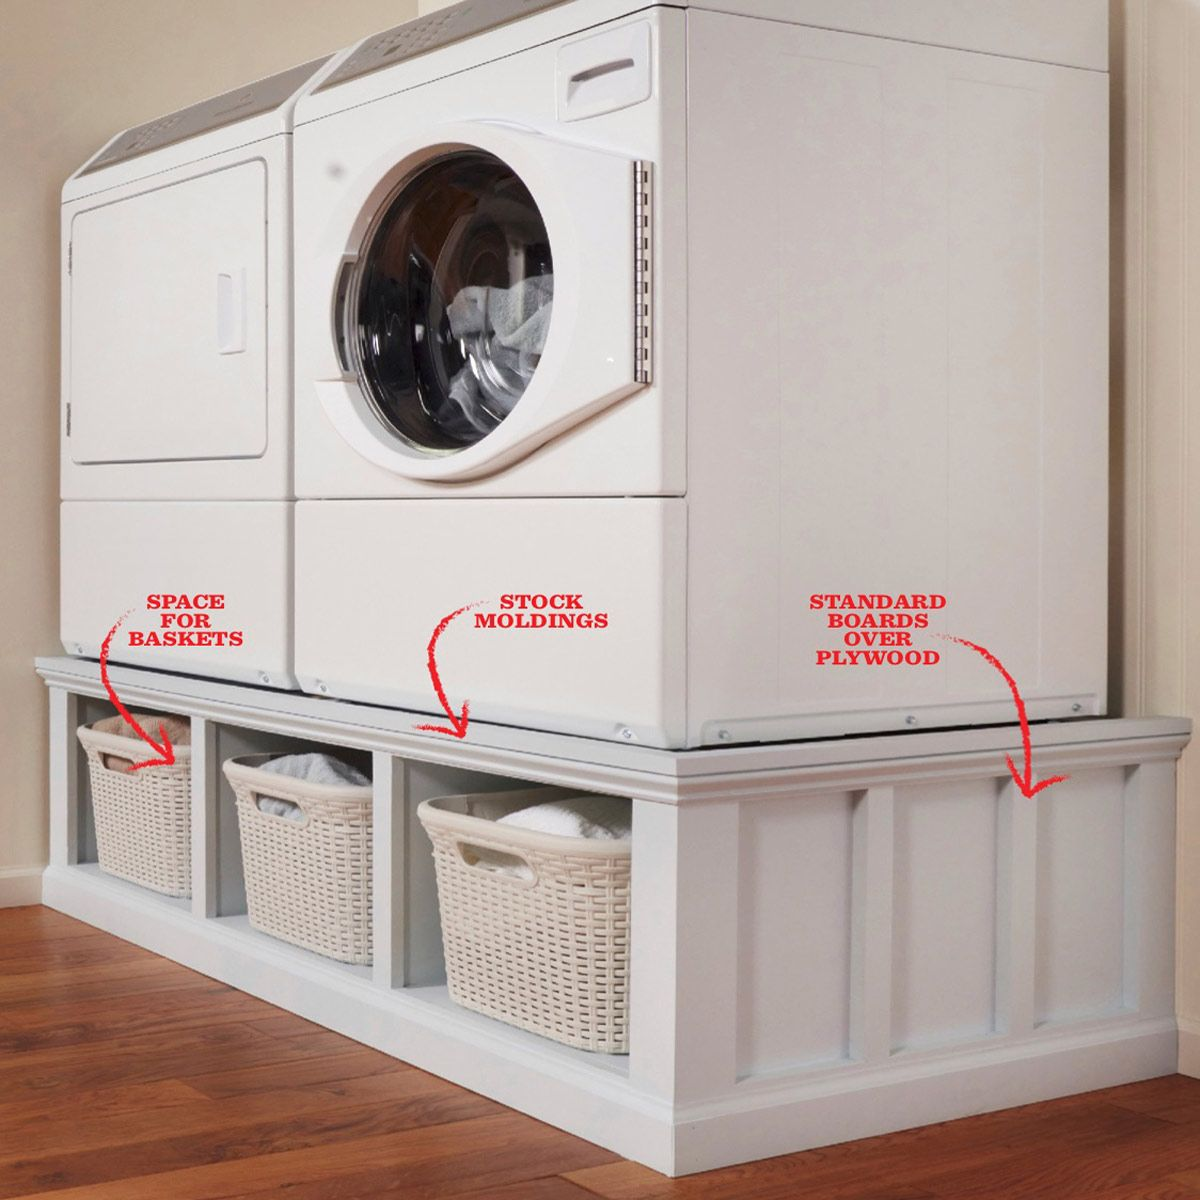 How to Build a Laundry Room Pedestal #bathroomlaundry